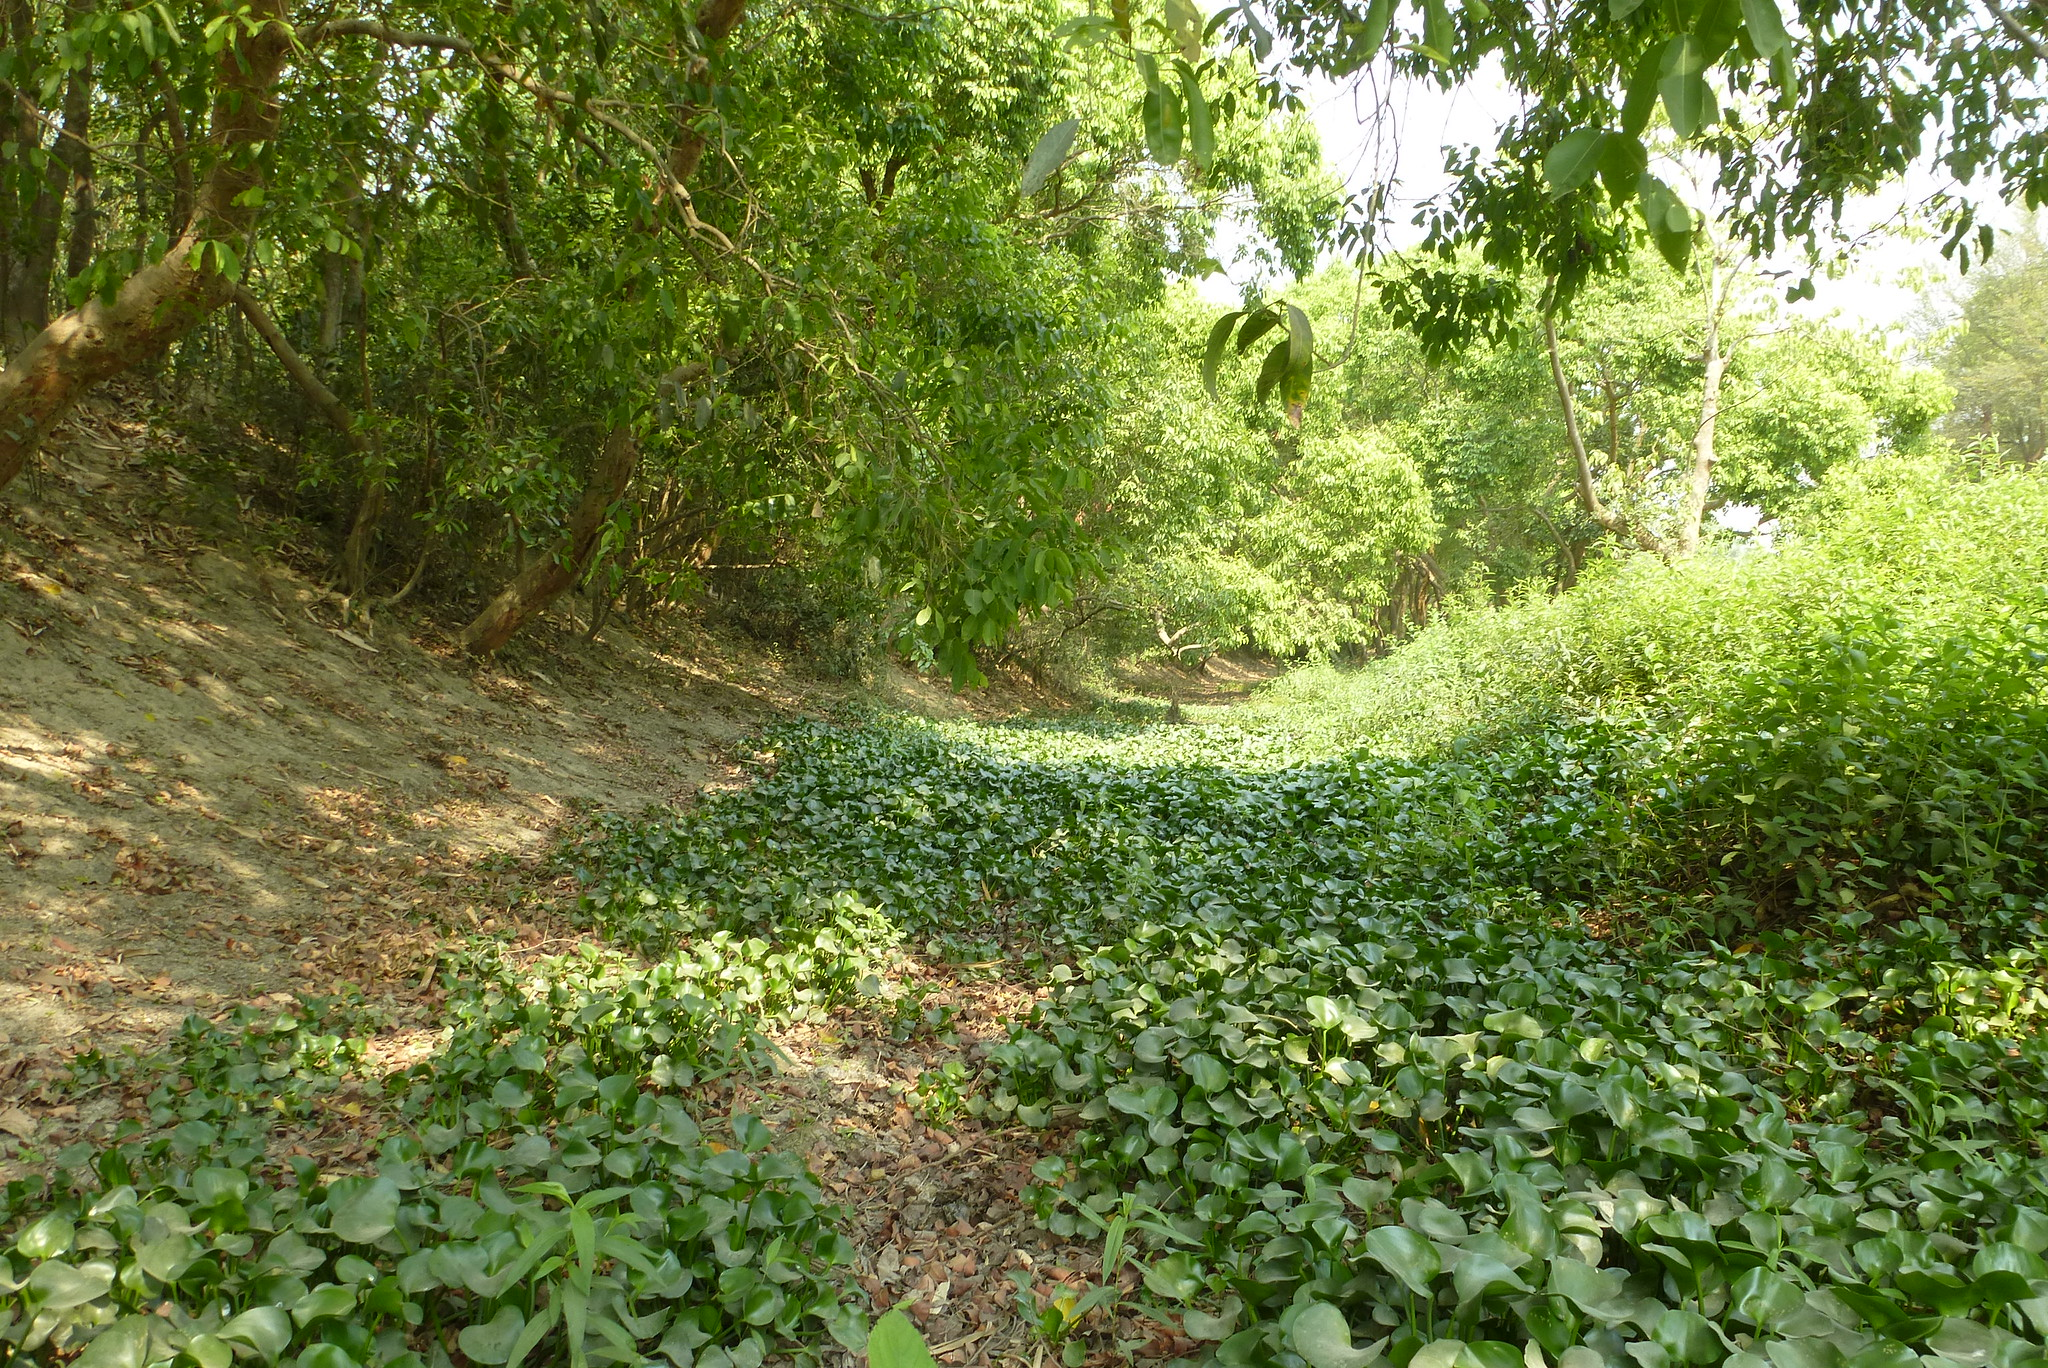 This old stream of Kamla is now dry for most of the year. The water hyacinths indicate the presence  of some moisture in the soil.